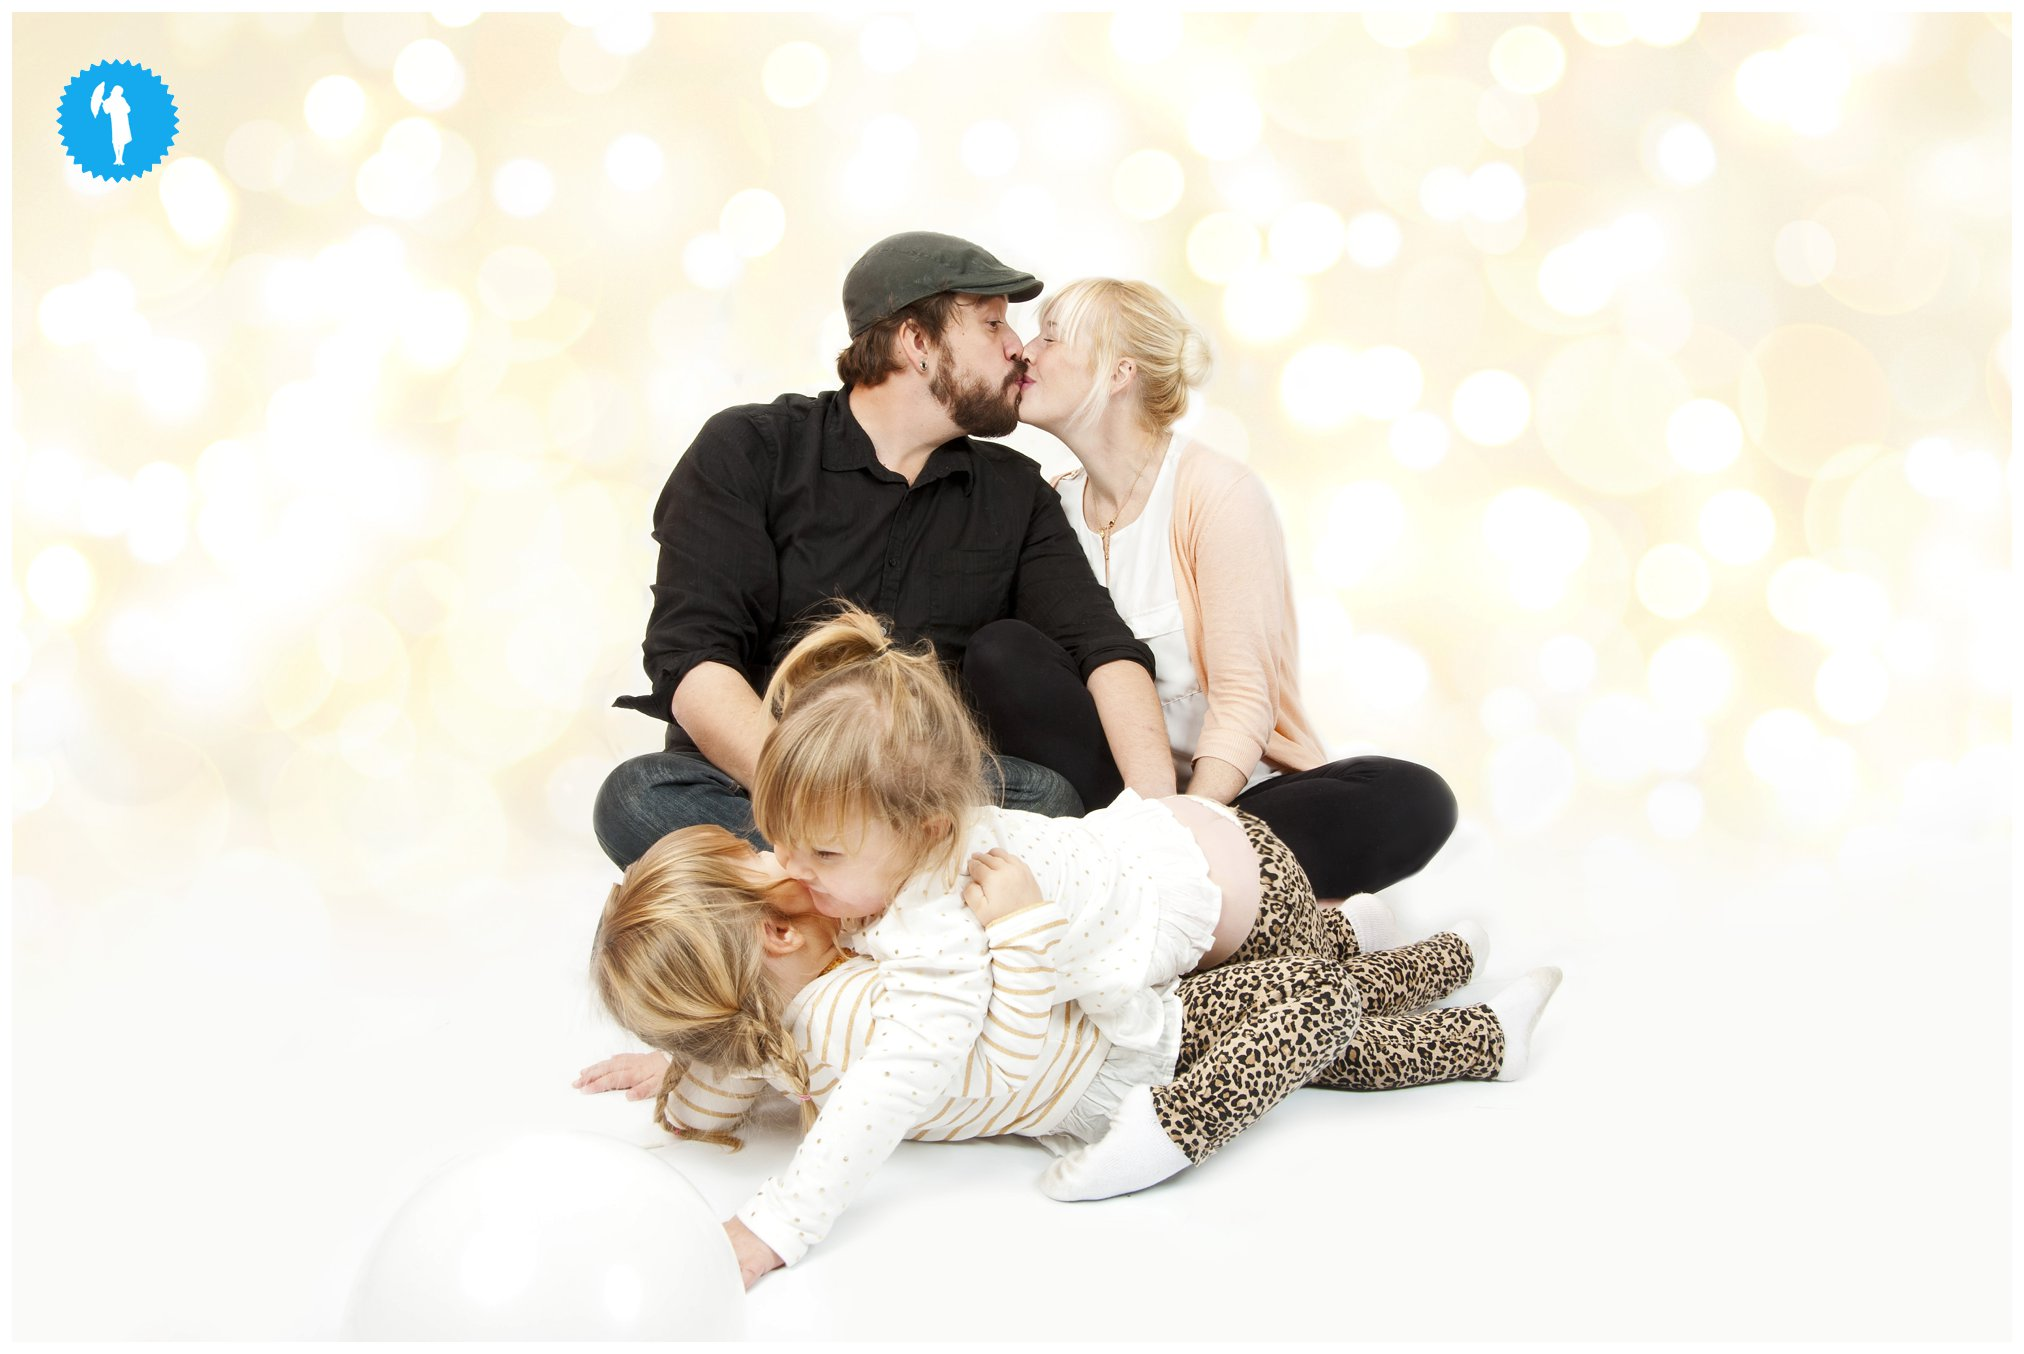 Family portrait photography in Kitchener, Waterloo, Cambridge, Guelph area.